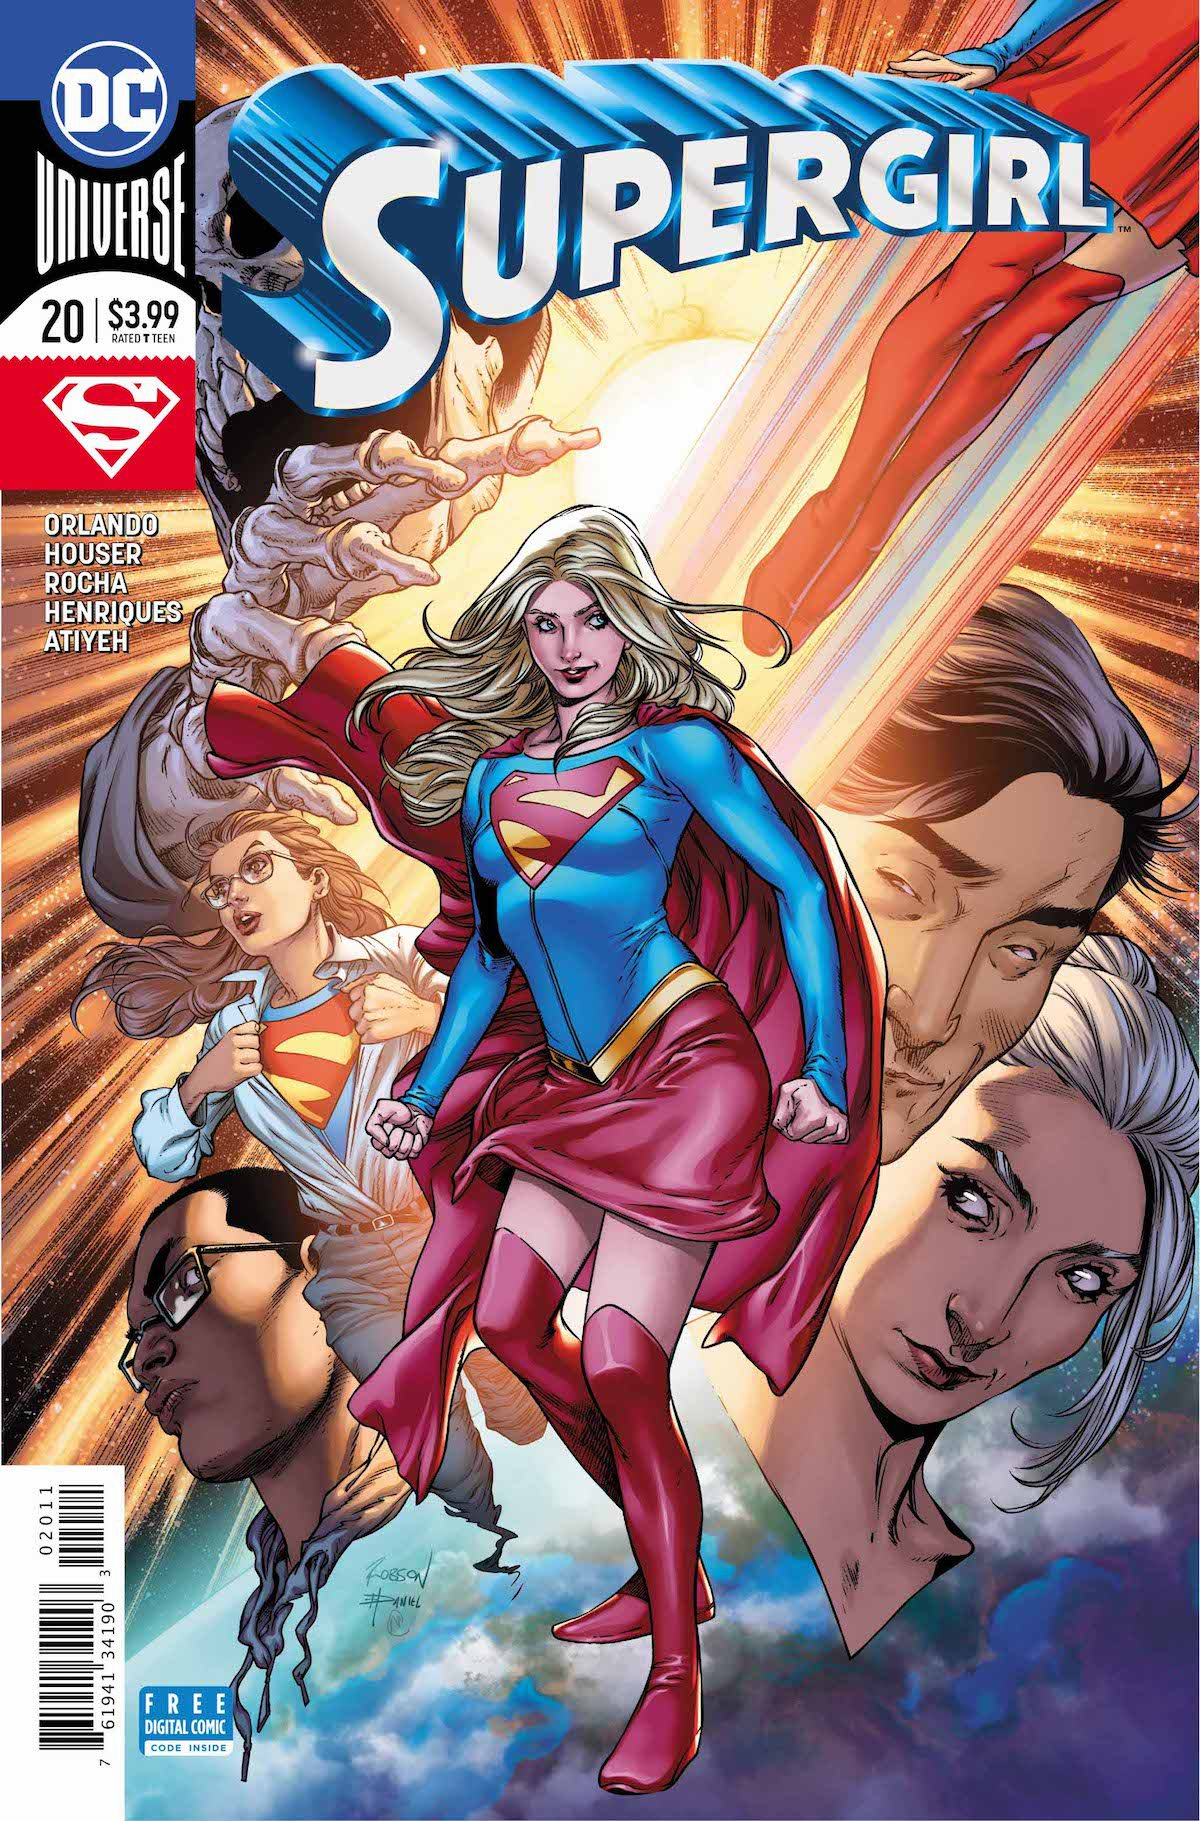 Supergirl #20 cover